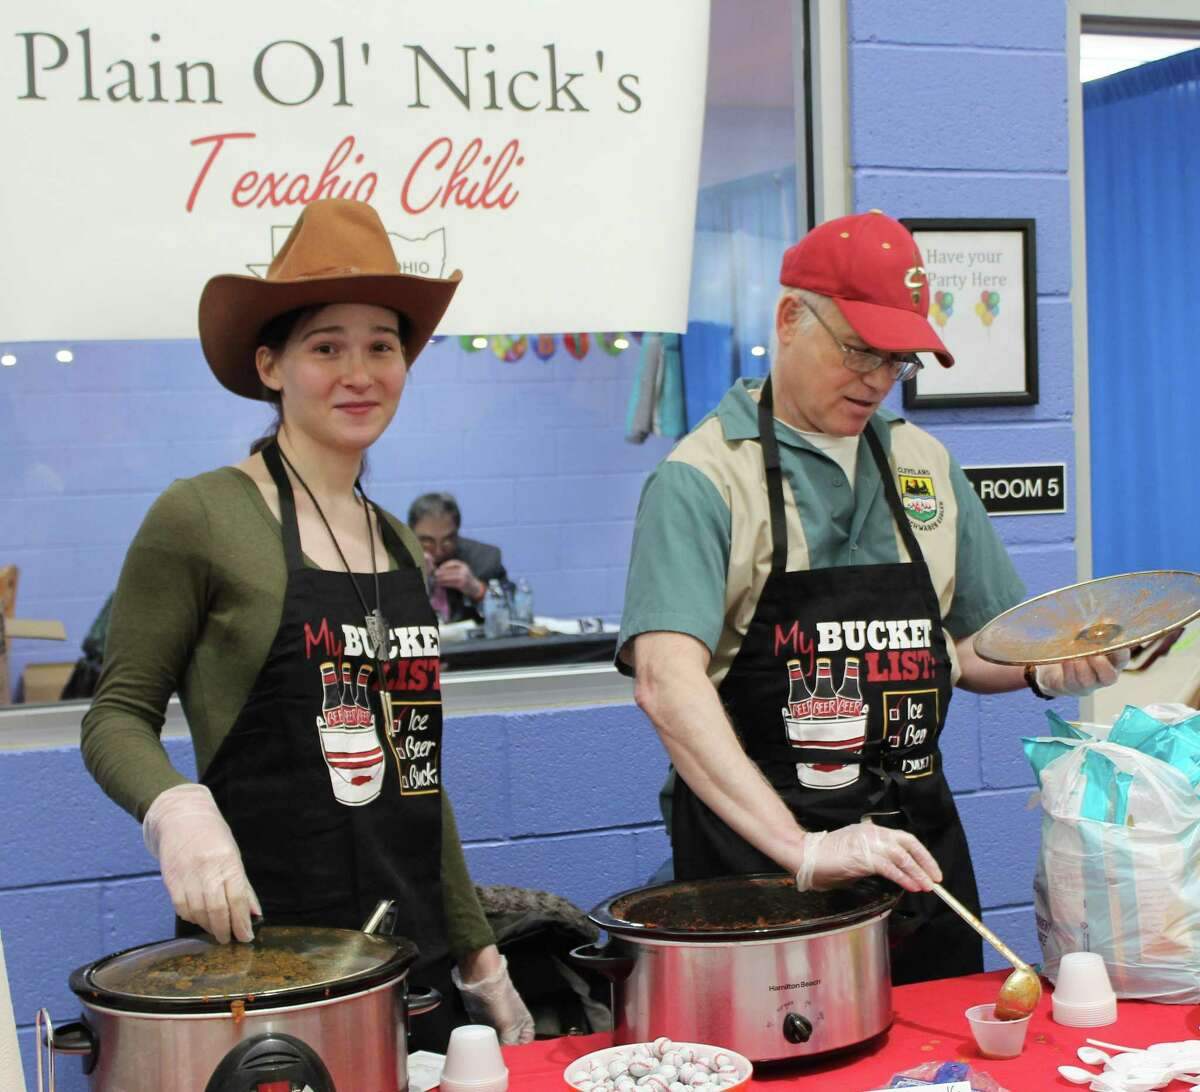 Nick Wolf, right, scoops some chili while co-worker Chloe Taub looks on during the Danbury Westerners' ninth-annual Chili Warm-Up at the Danbury Sports Dome March 26, 2017.